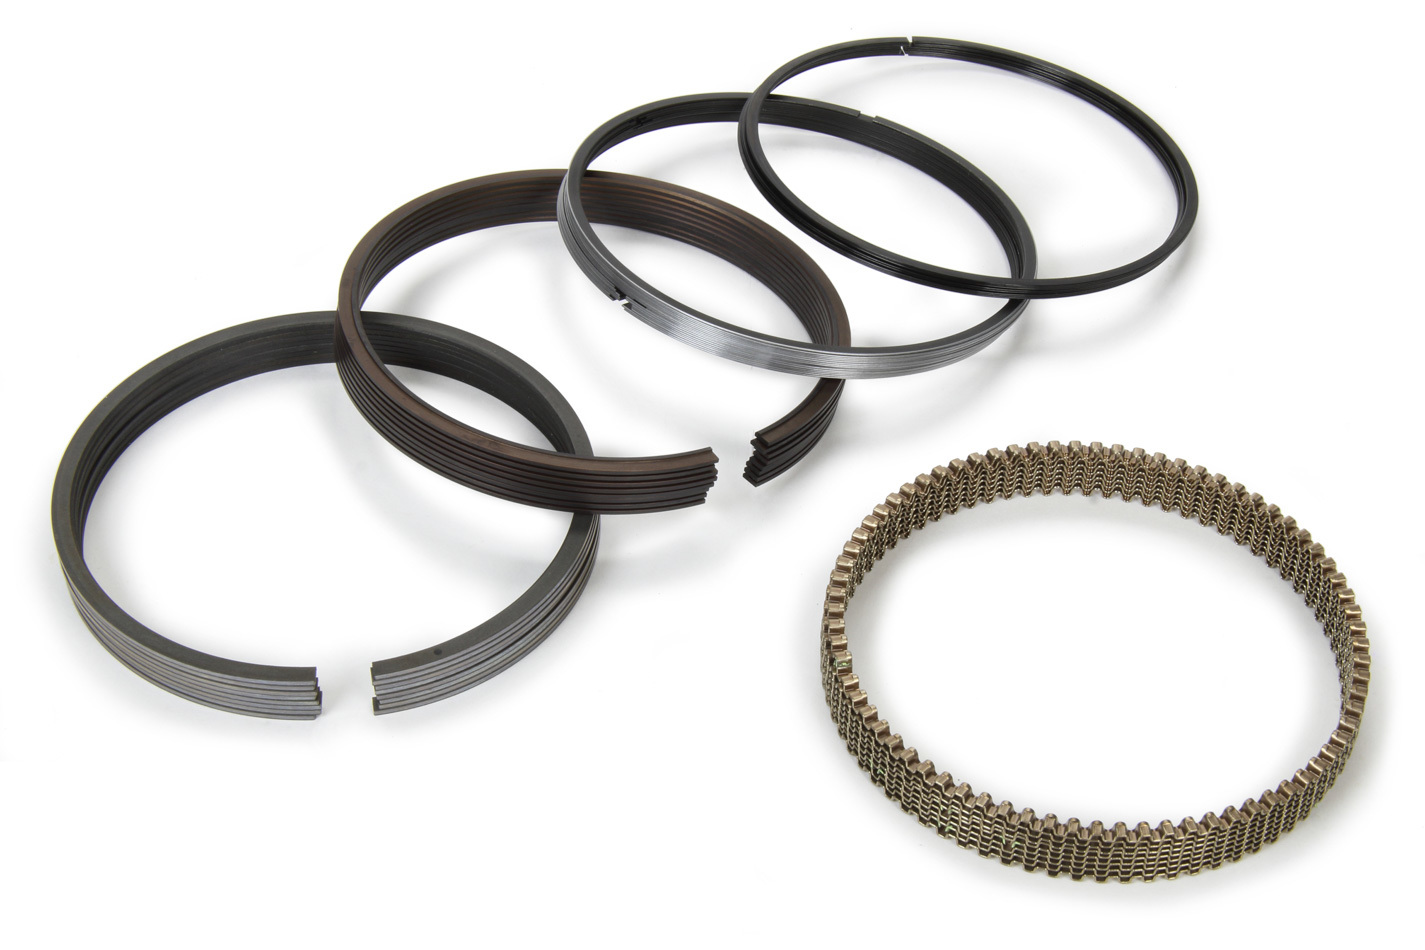 Total Seal CL2010-20 Piston Rings, Claimer, 4.020 in Bore, 1.5 x 1.5 x 3.0 mm Thick, Low Tension, Plasma Moly, 8 Cylinder, Kit